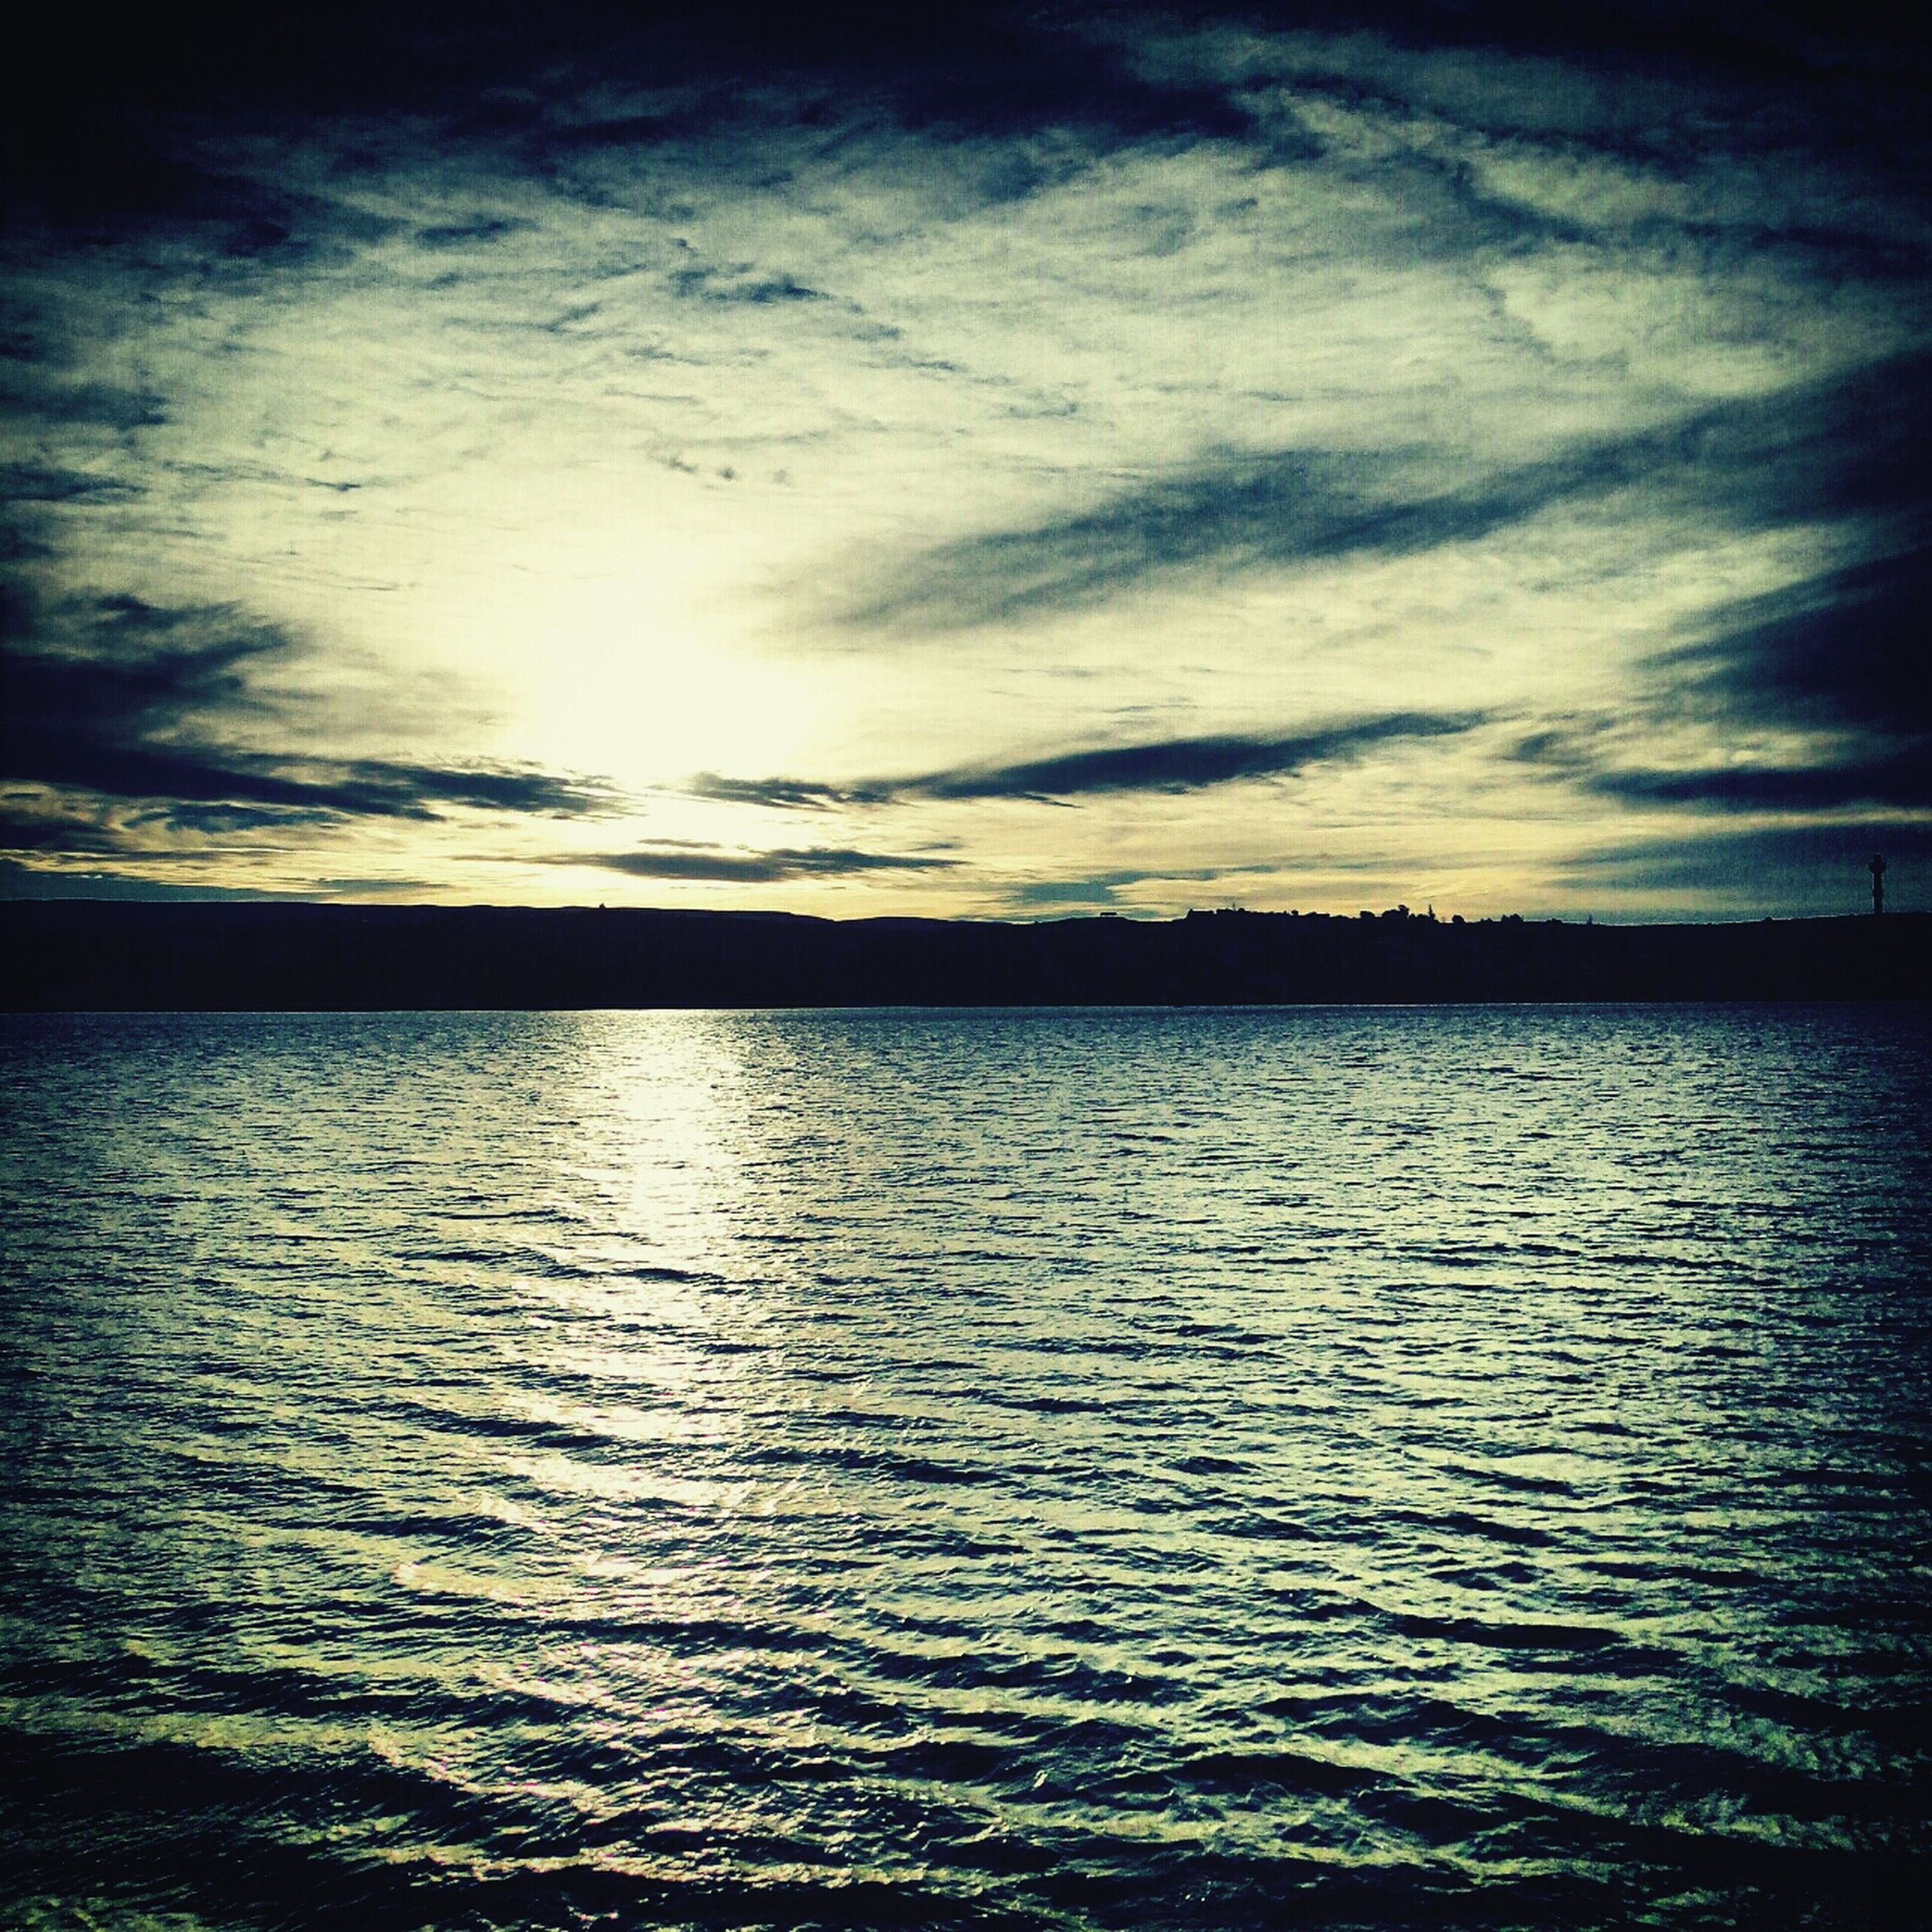 water, sky, tranquil scene, tranquility, waterfront, scenics, cloud - sky, beauty in nature, sunset, rippled, nature, reflection, cloud, sea, cloudy, idyllic, lake, silhouette, outdoors, calm